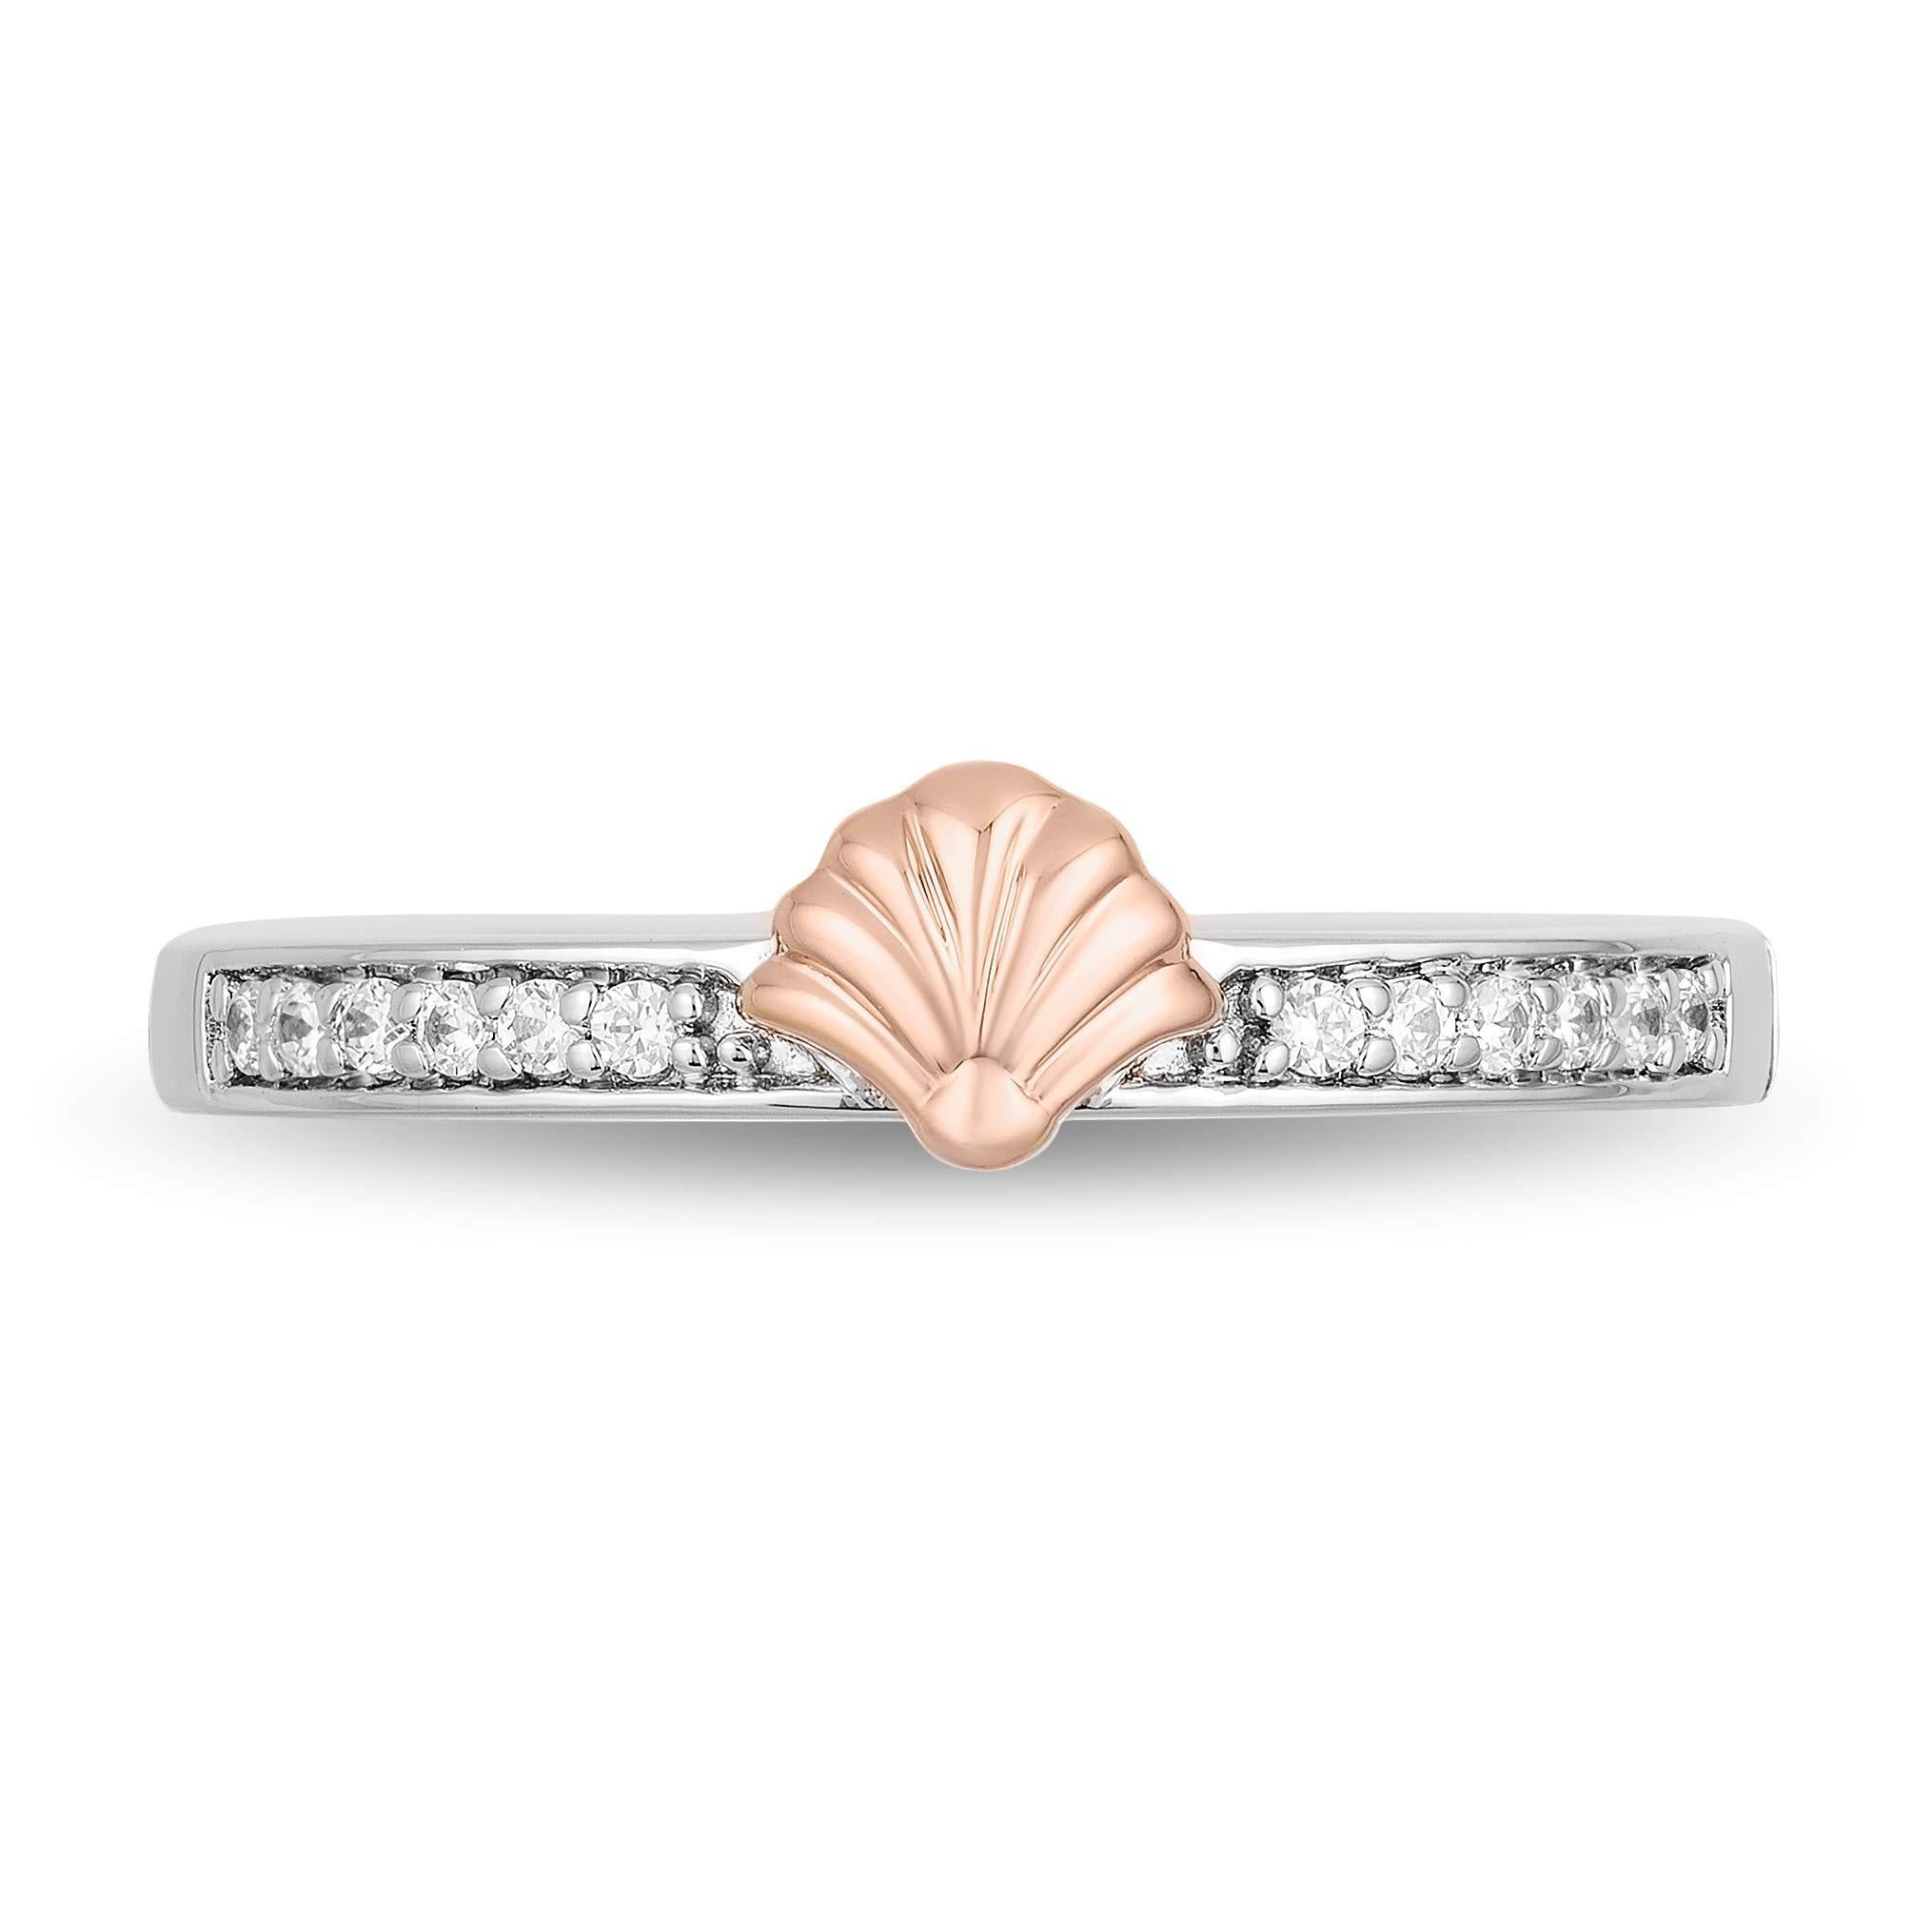 enchanted_disney-ariel_ring-9k_rose_gold_and_sterling_silver_0.10CTTW_2